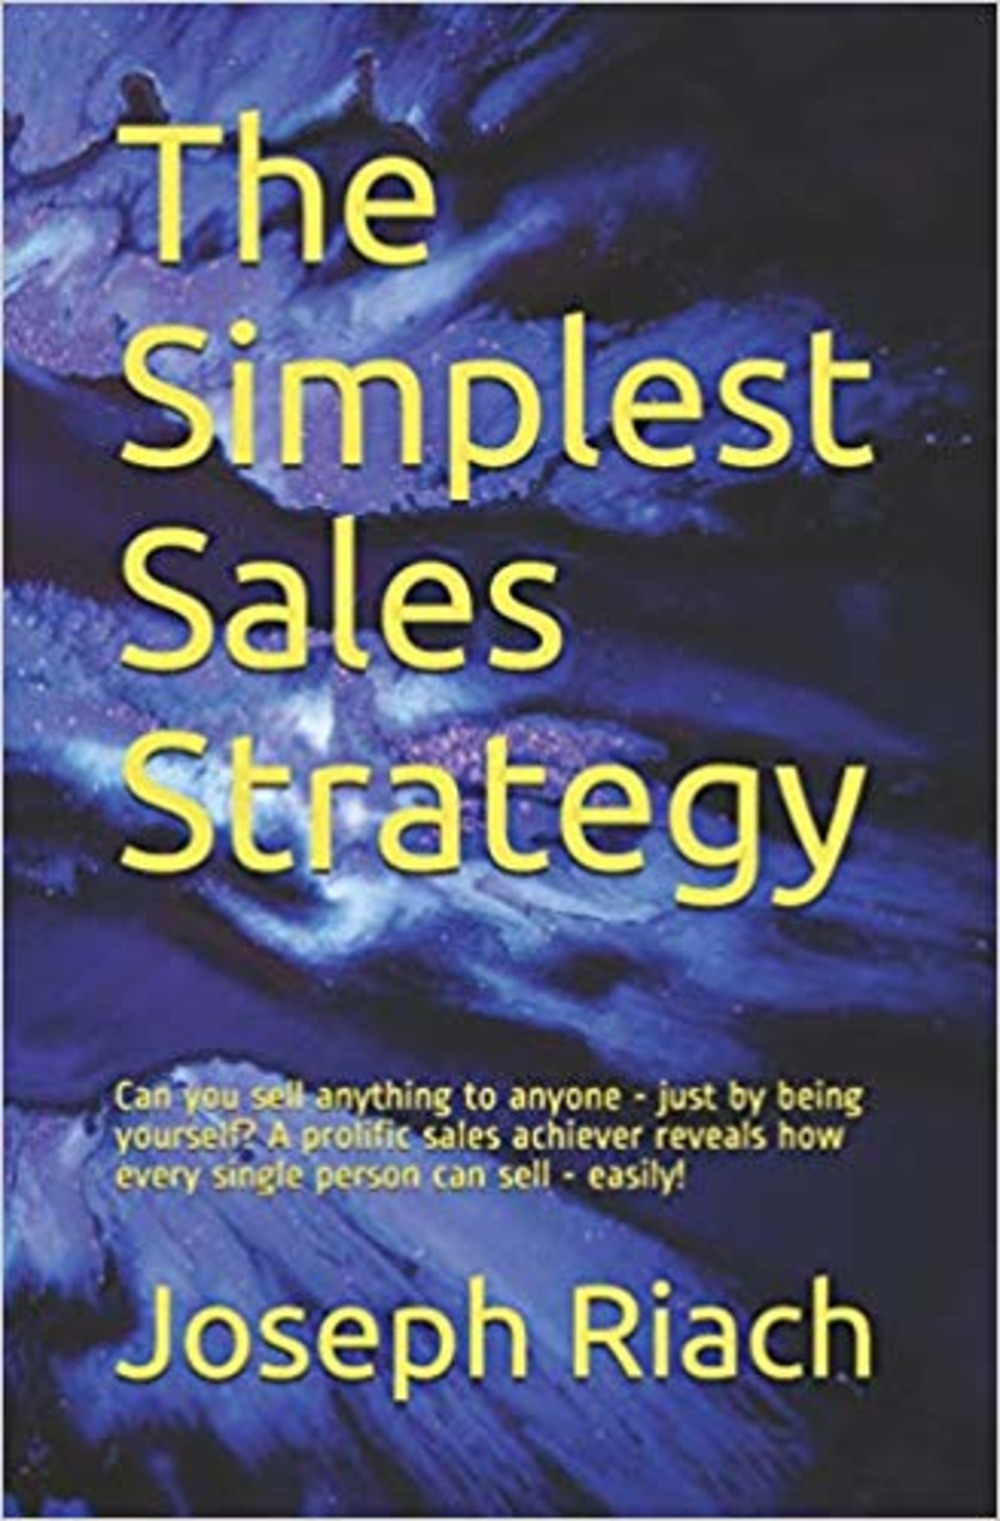 The Simplest Sales Strategy